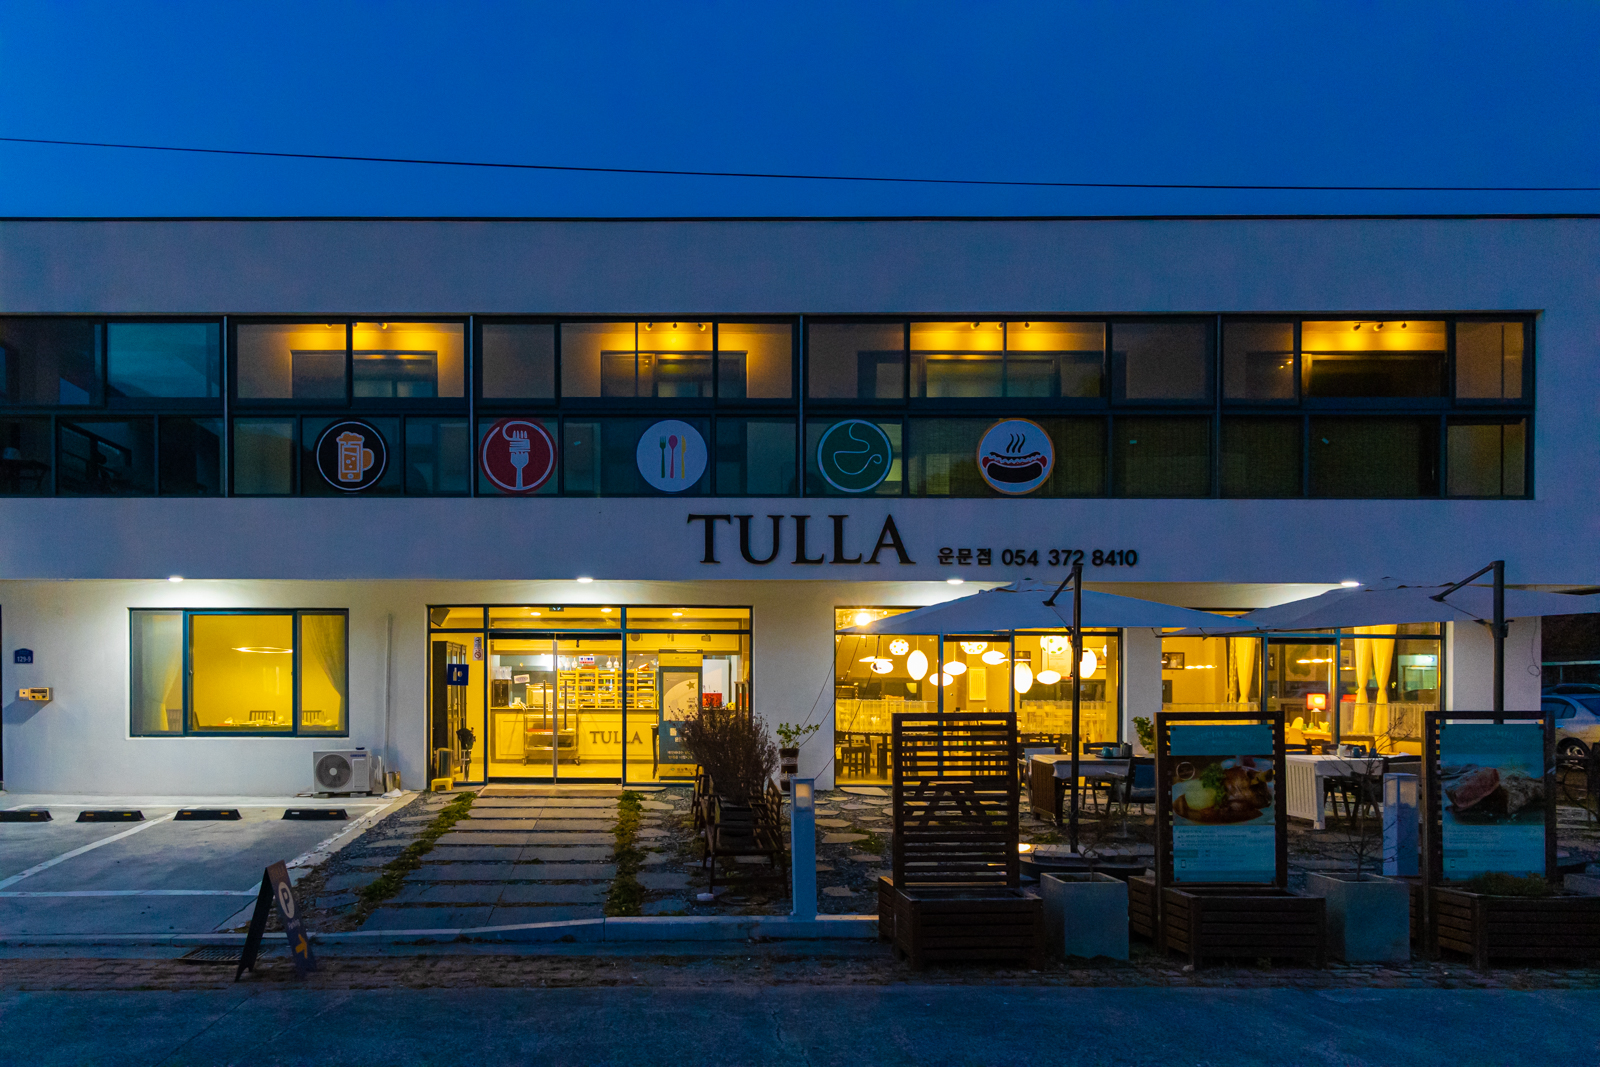 Tulla: Homestyle German Cuisine